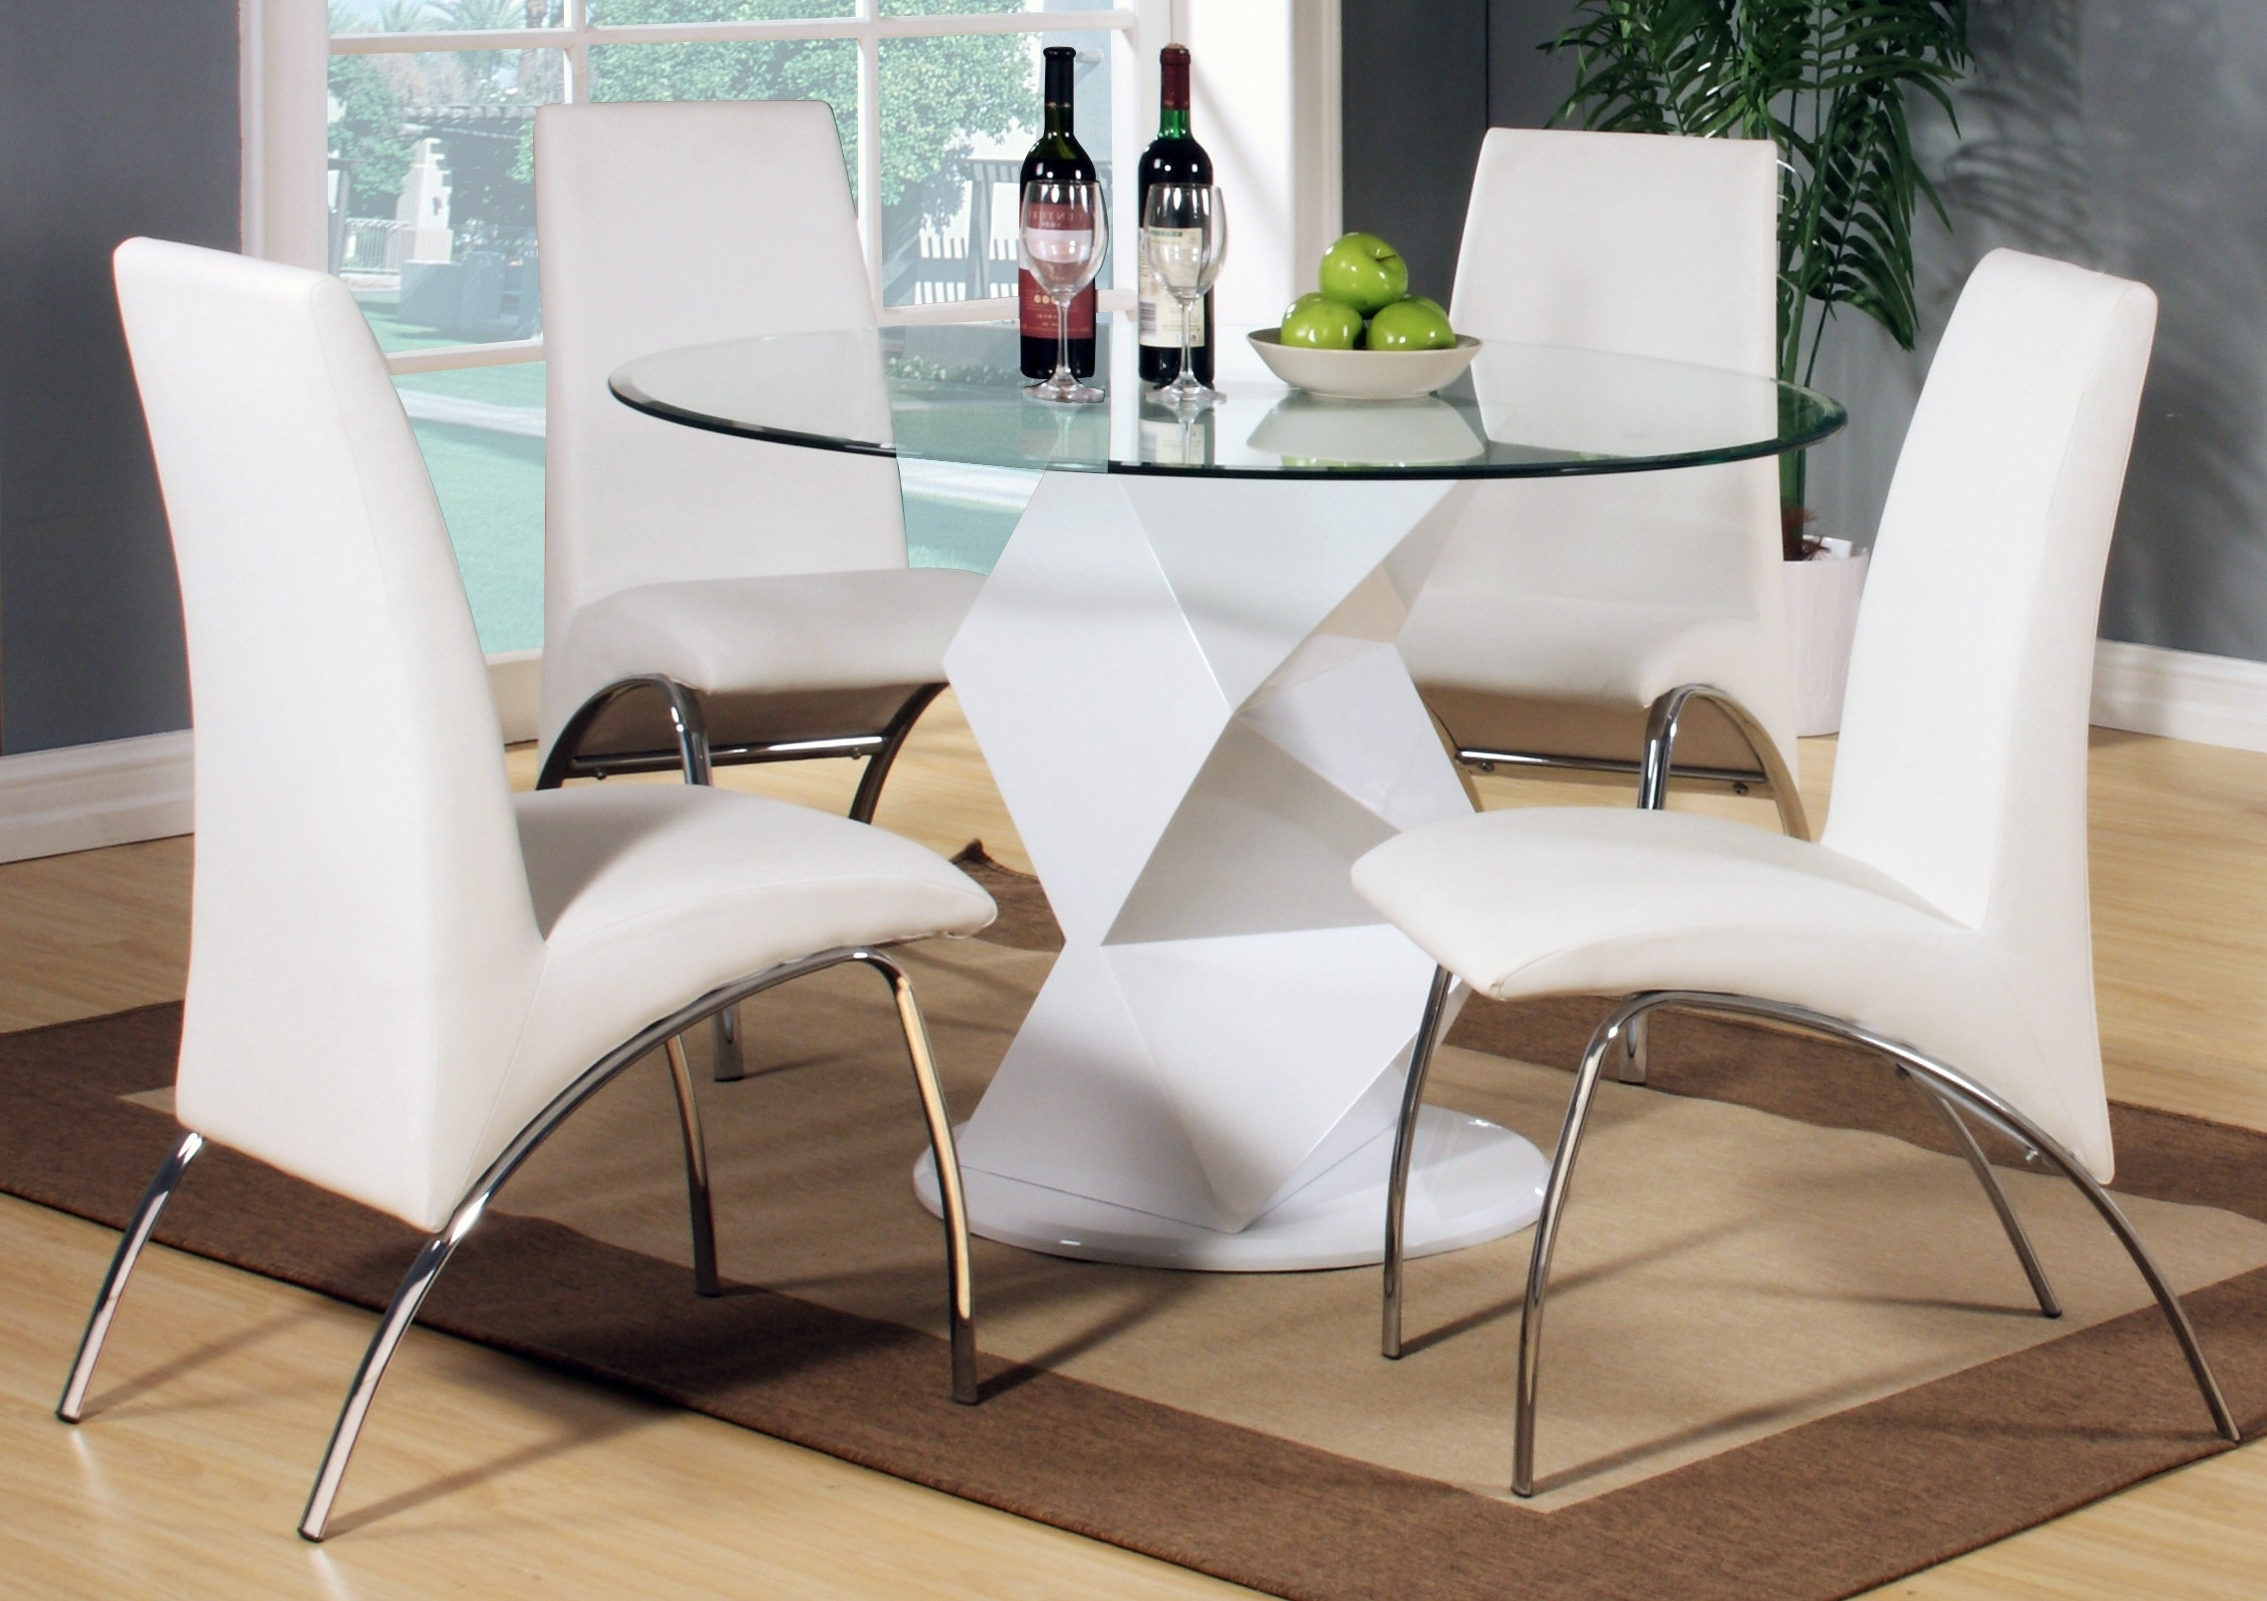 Well Known Finn White High Gloss Round Dining Table Set 4 Seater Regarding White High Gloss Dining Tables And 4 Chairs (View 6 of 25)